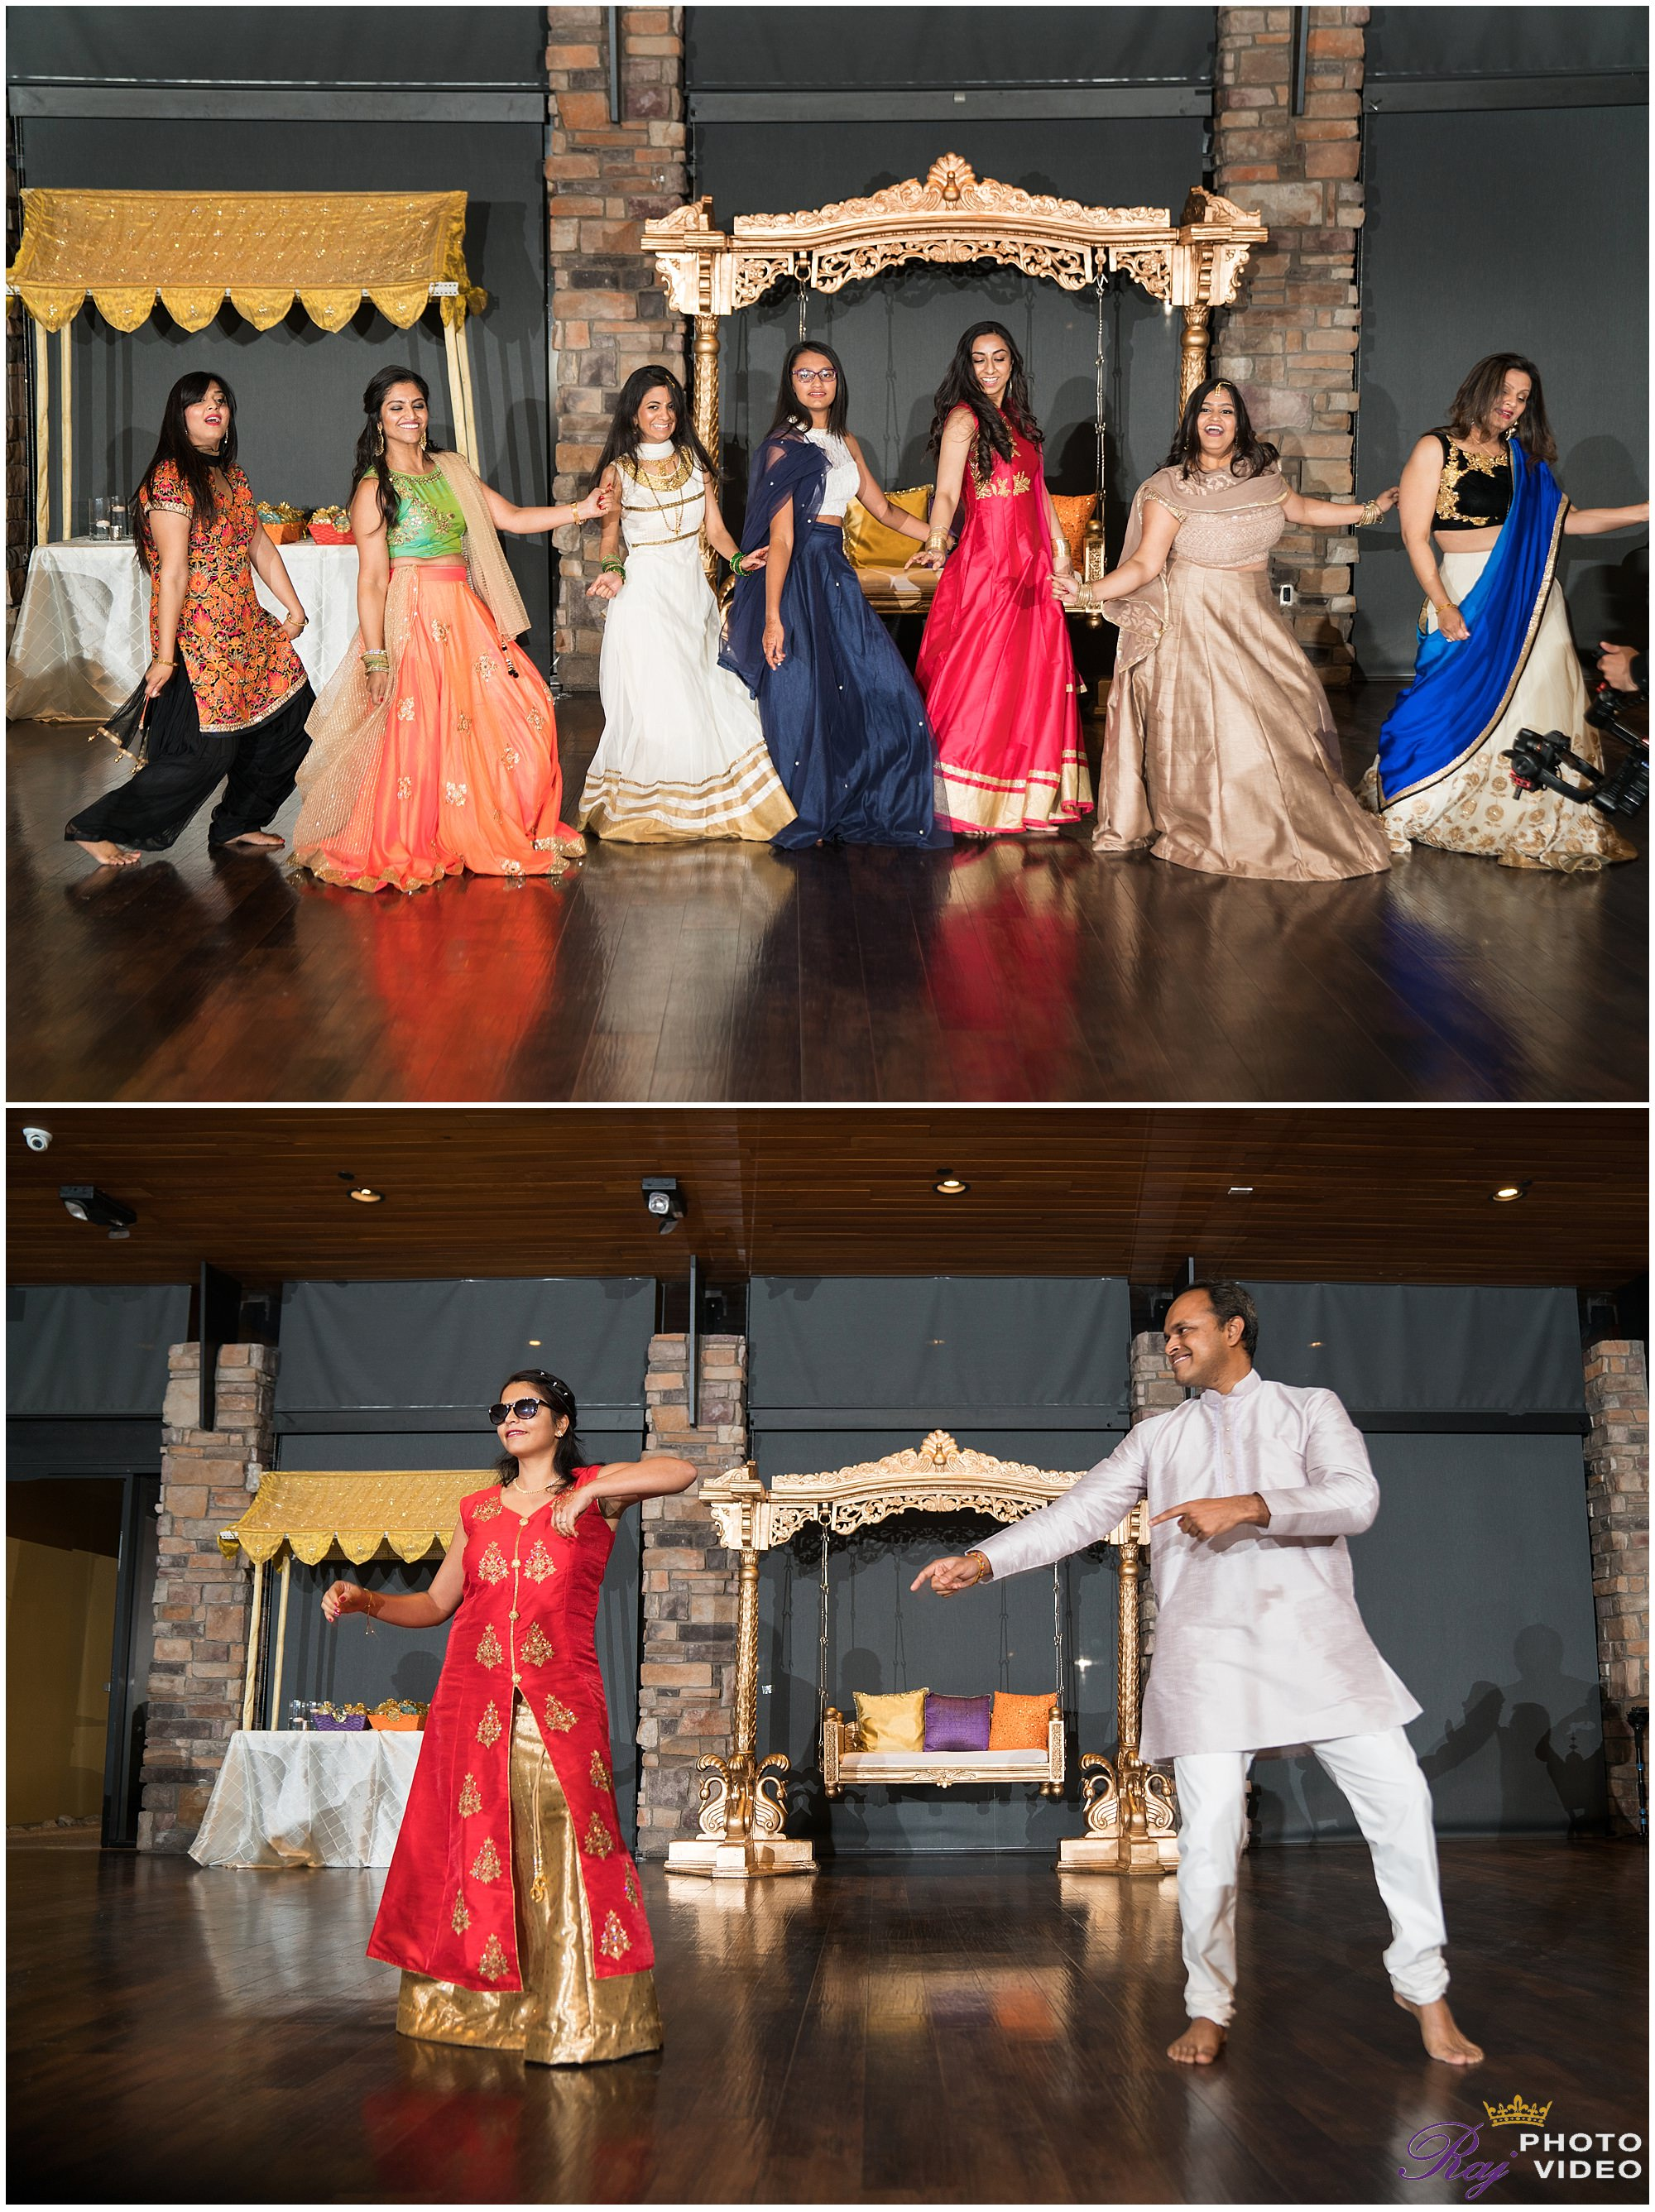 Aviano_Community_Center_Phoenix_Arizona_Indian_Wedding_Sangeet_Sapna_Shyam-6.jpg